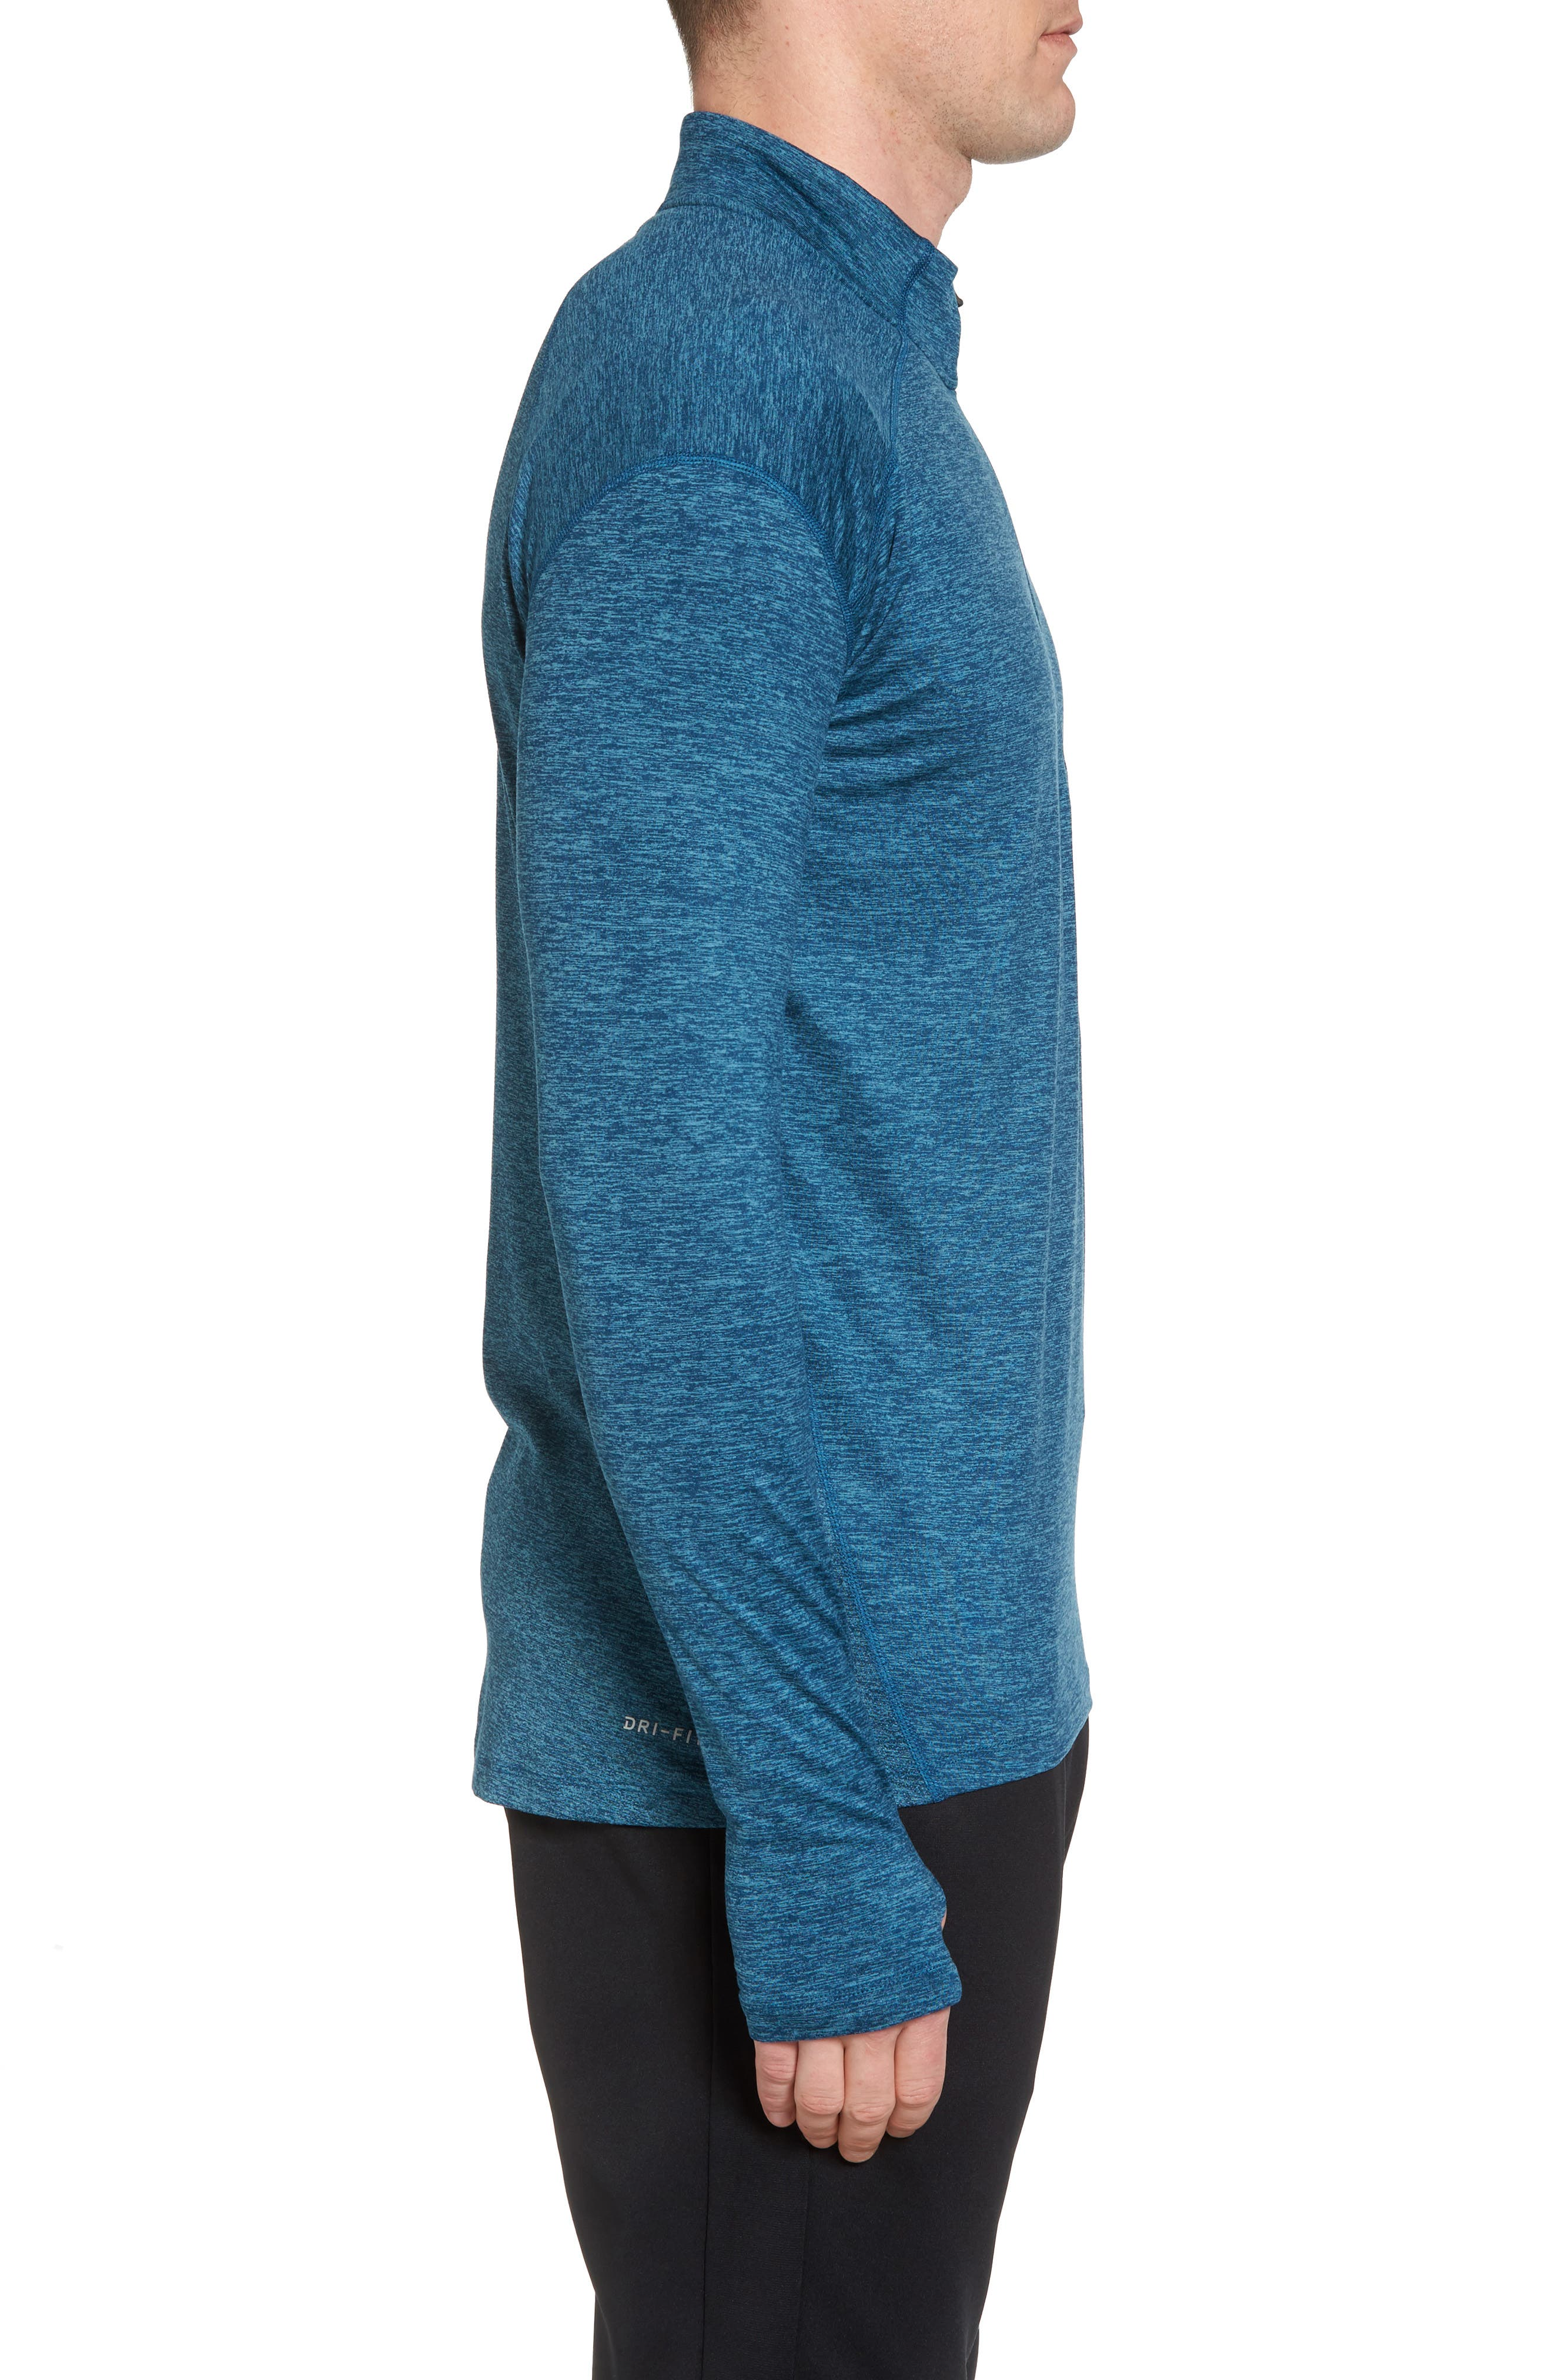 Dry Element Running Top,                             Alternate thumbnail 16, color,